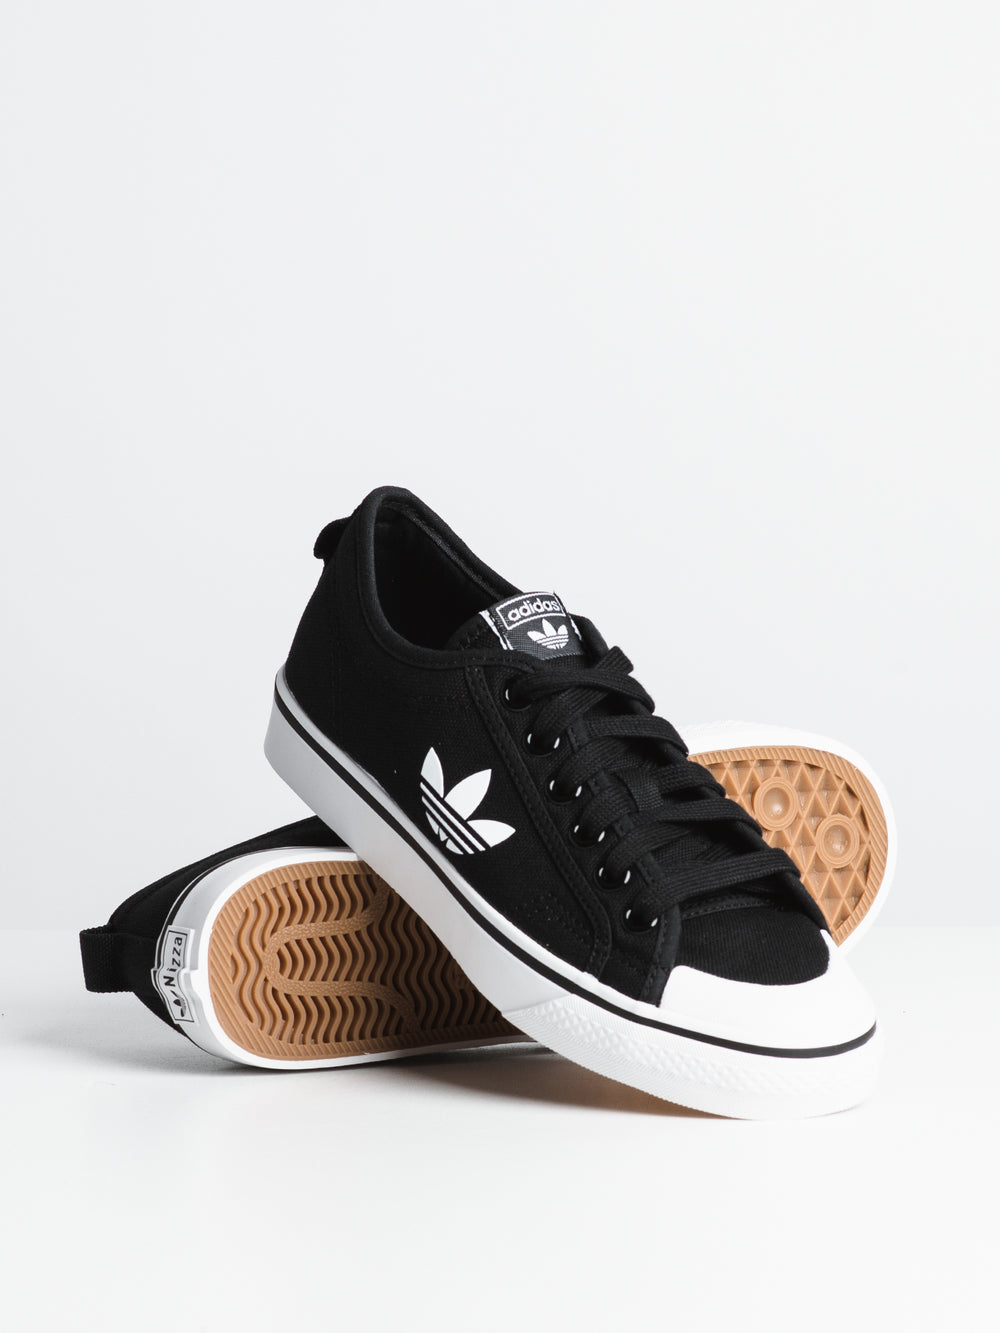 WOMENS NIZZA TREFOIL - BLACK/WHITE